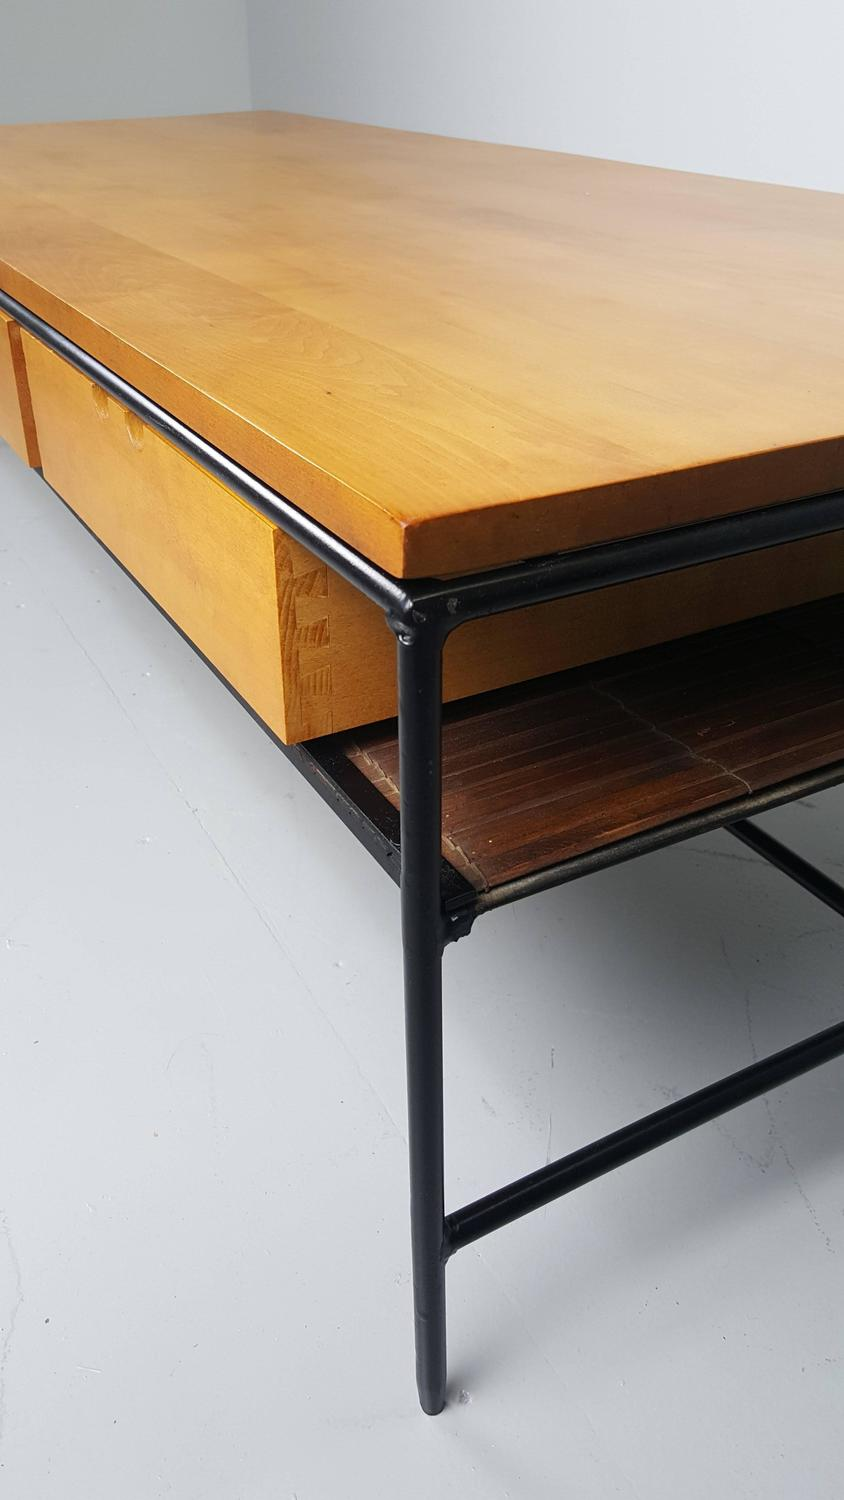 Beautiful Iron And Maple Coffee Table By Paul Mccobb 1950s For Sale At 1stdibs